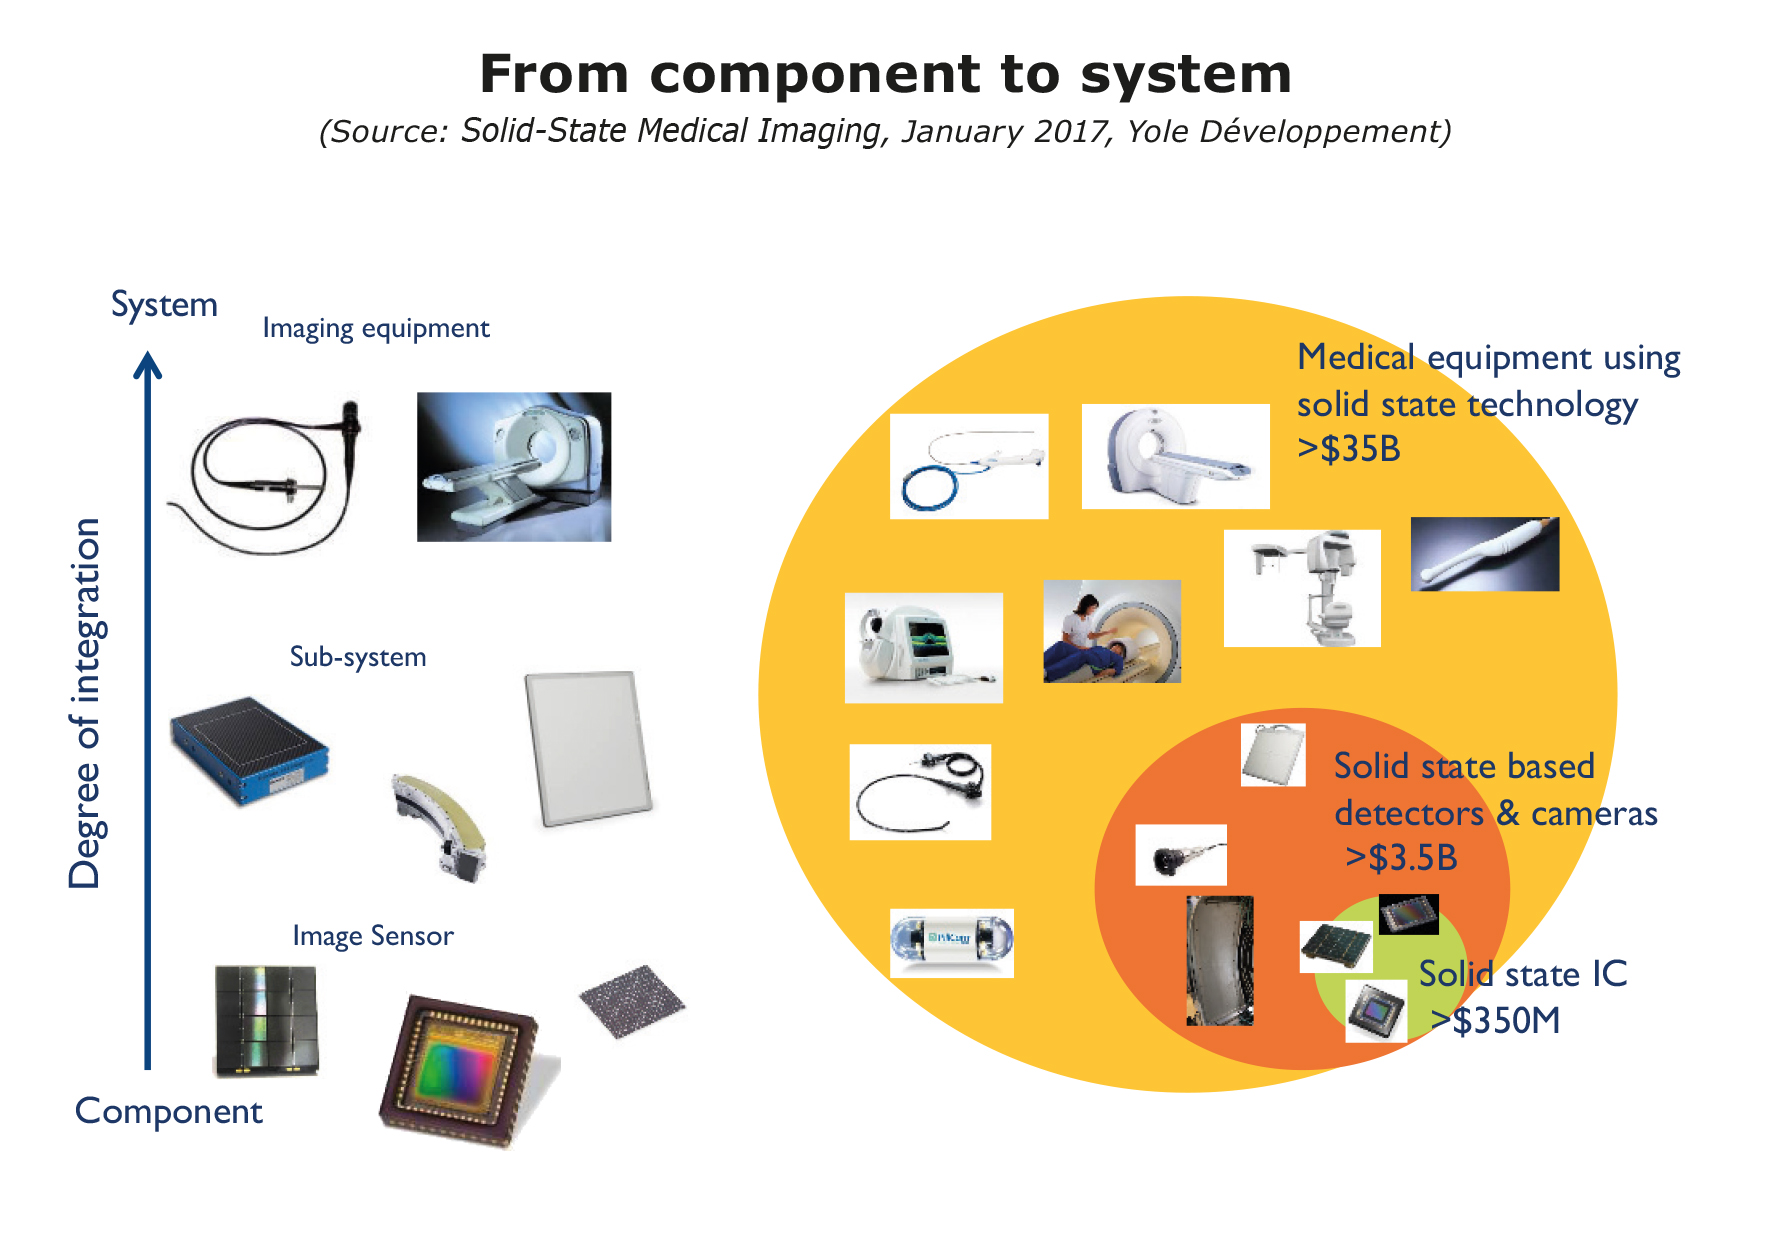 From component to system Yole Developpement